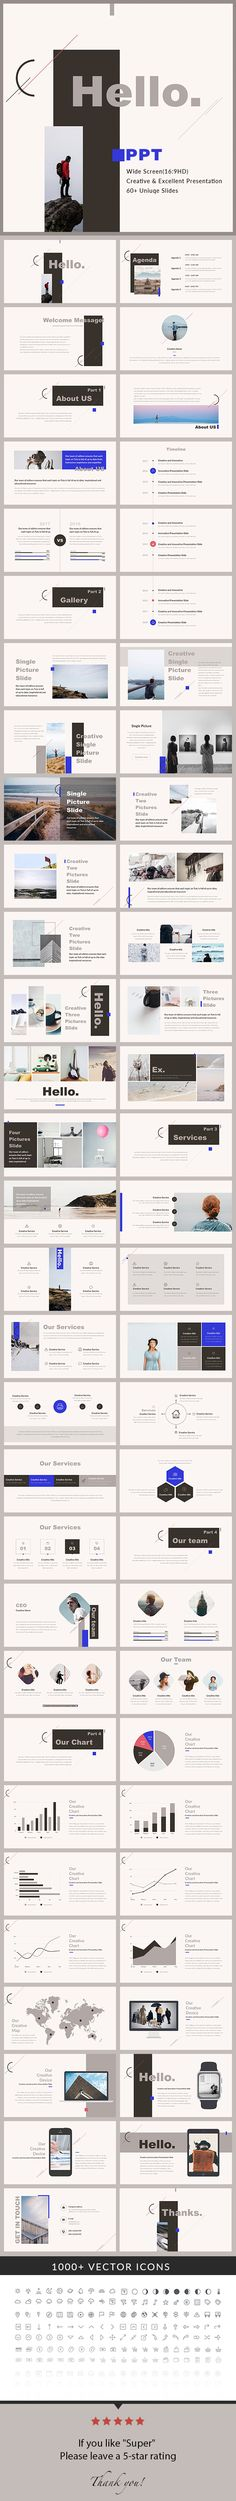 Hello  PowerPoint Presentation Template — Powerpoint PPT #infographic #chart • Download ➝ https://graphicriver.net/item/hello-powerpoint-presentation-template/19164003?ref=pxcr